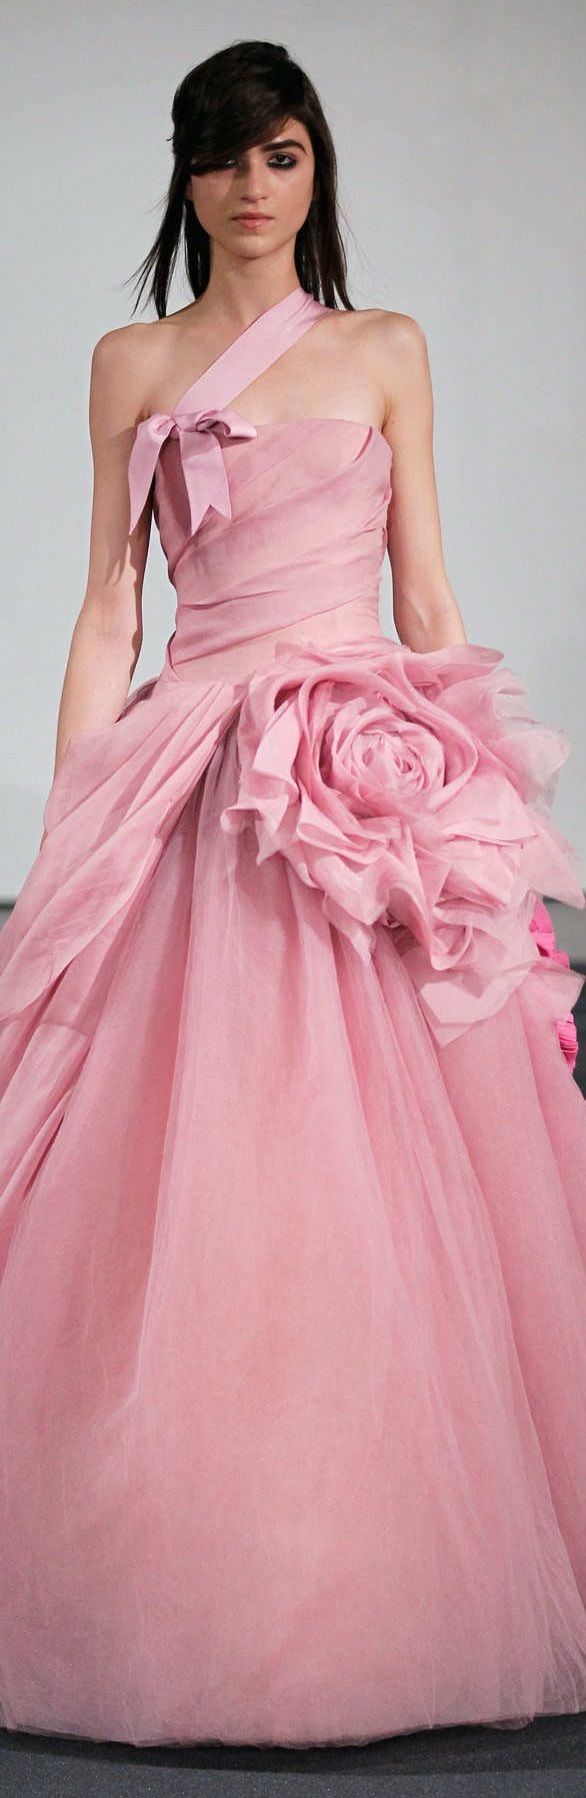 128 best ✤✤ Vera Wang ✤✤ images on Pinterest | Bridal gowns ...